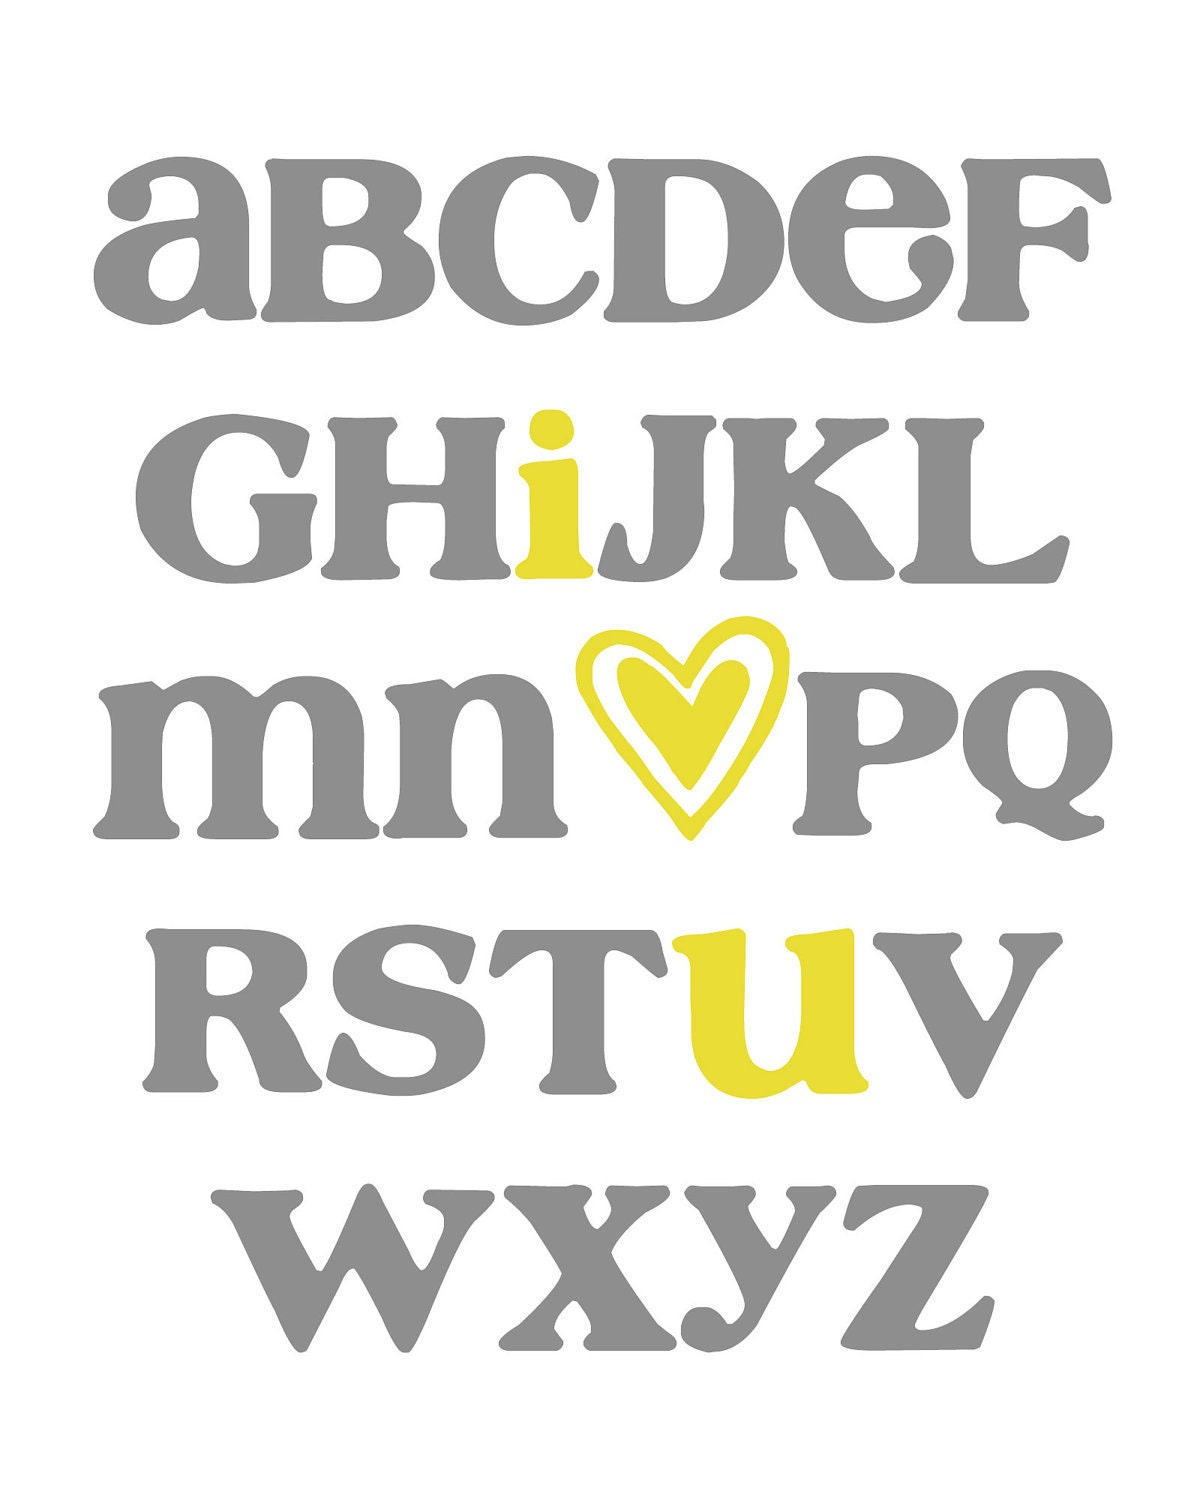 Abc alphabet art i love you digital nursery wall art for Alphabet wall decoration